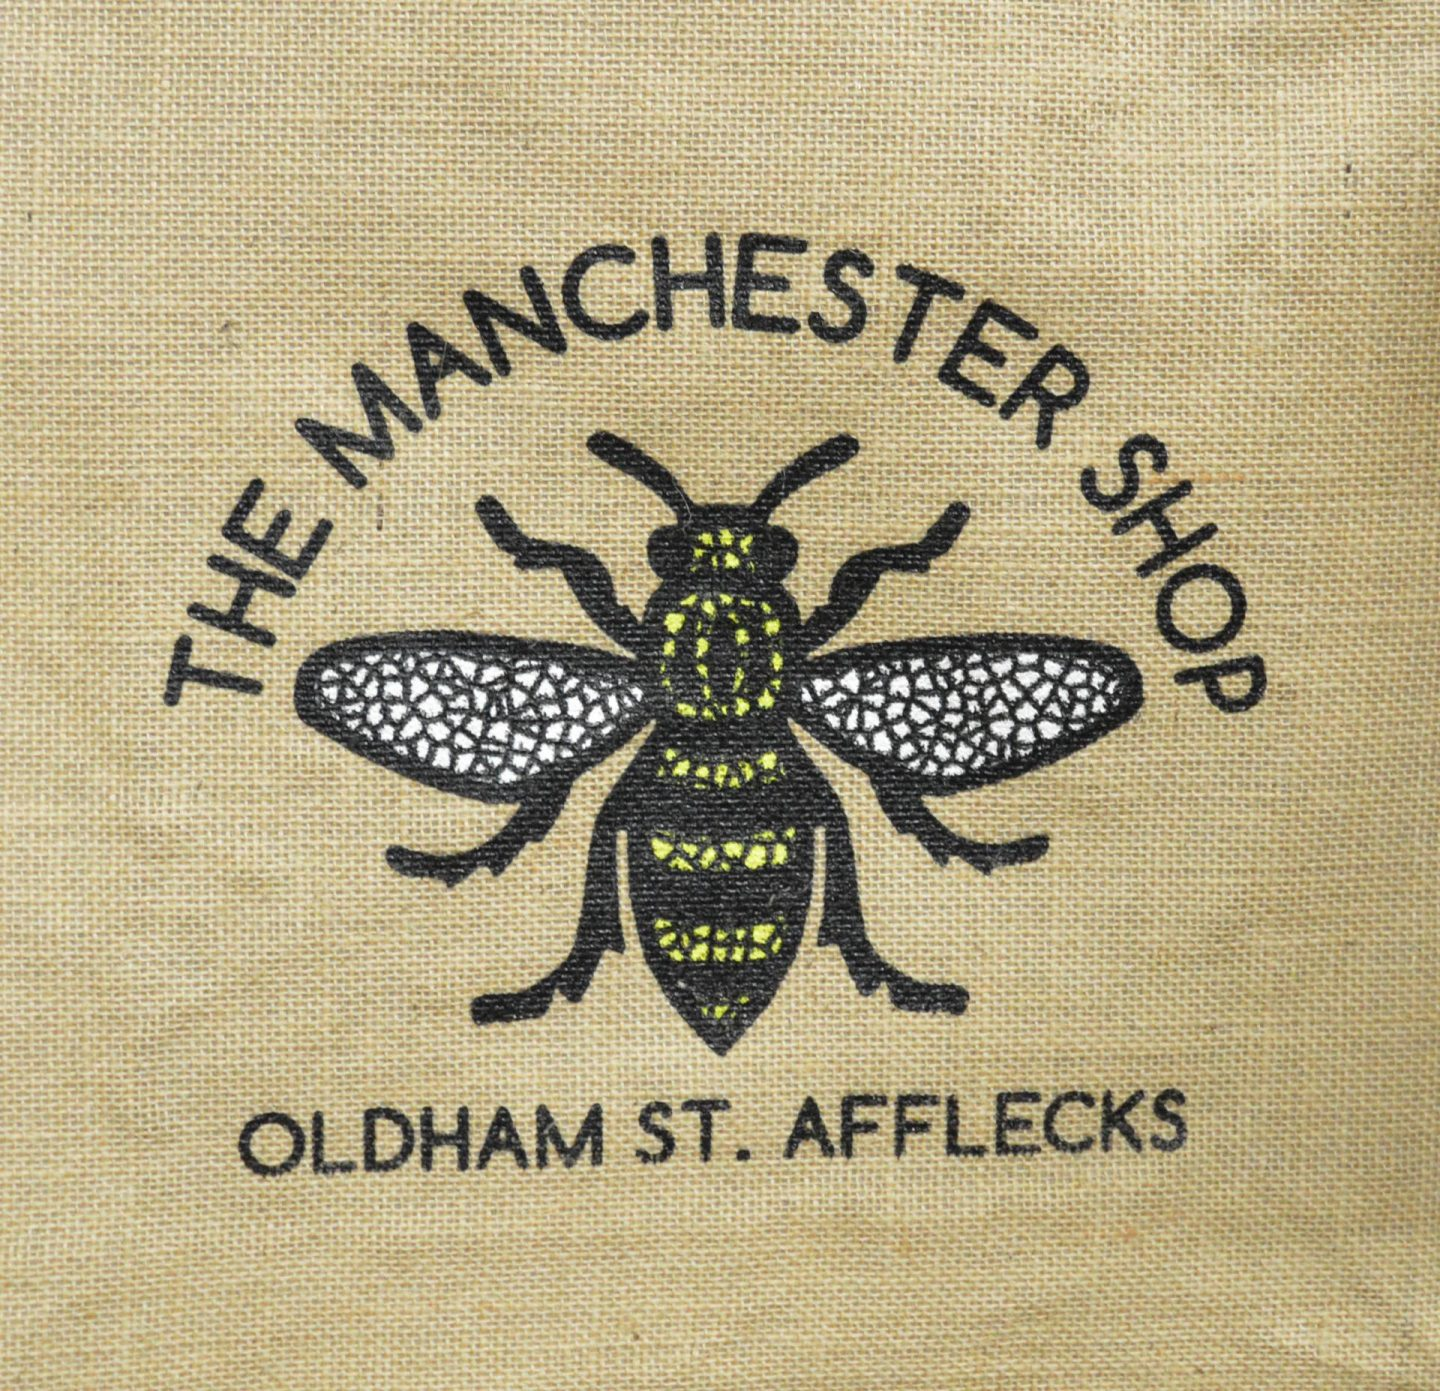 Exploring Manchester's Northern Quarter, the Manchester Shop